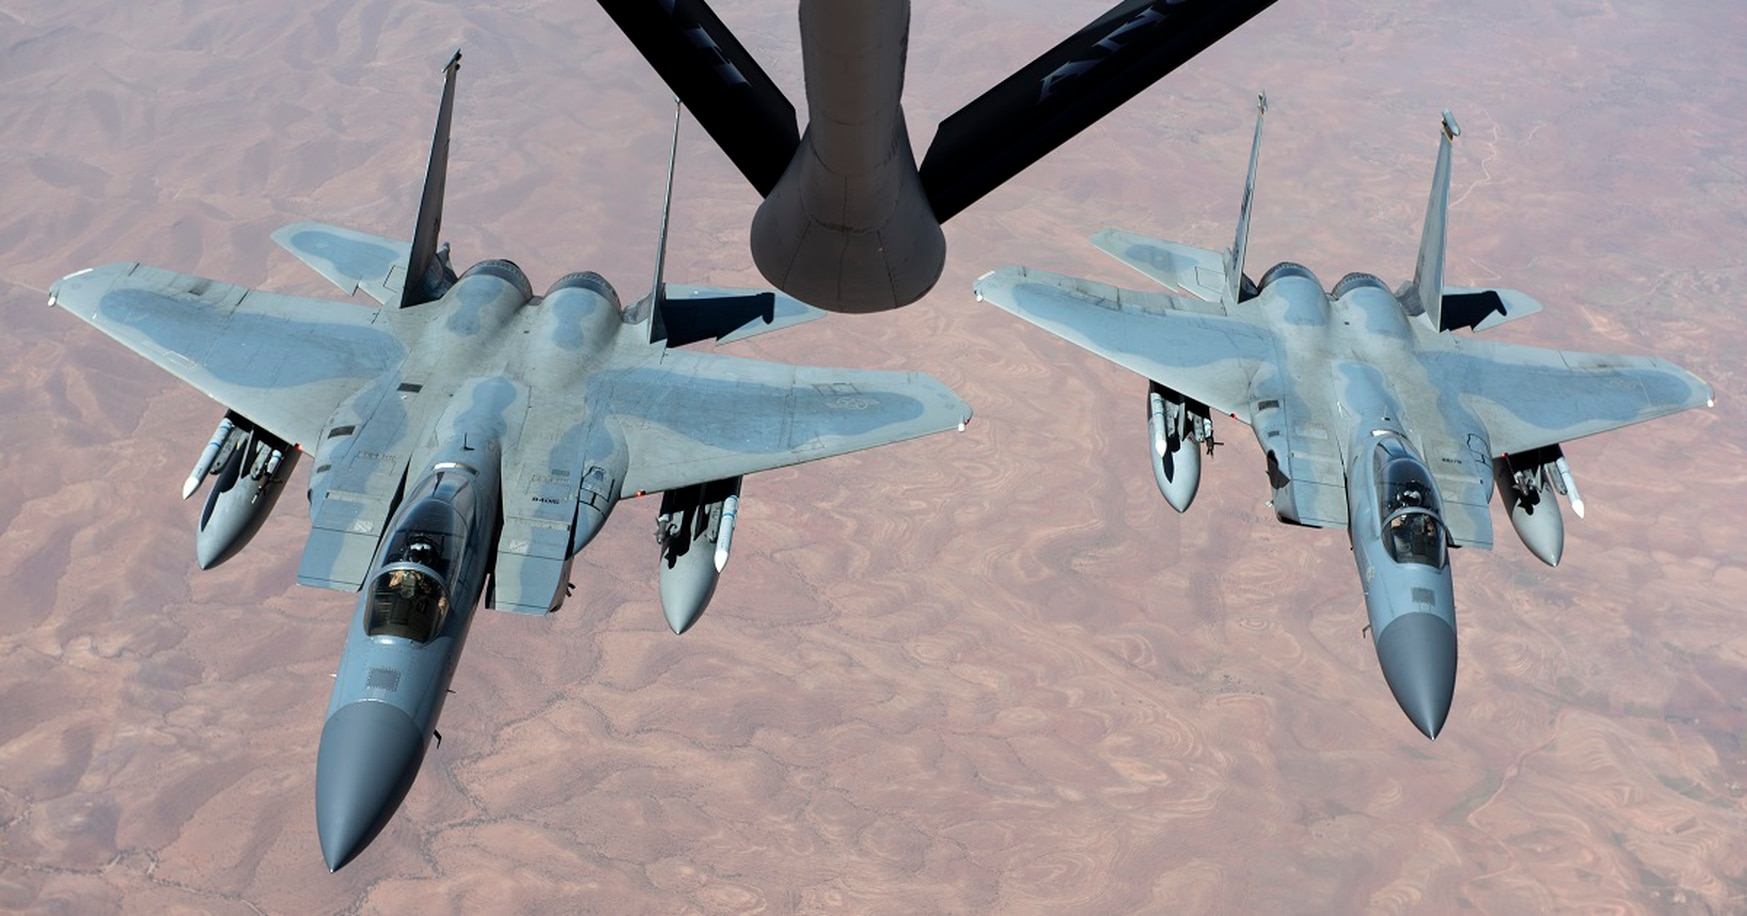 F-15C Eagles receive fuel over Morocco in April 2018. With Nigerien Air Base 201 becoming operational, violent extremists are not going to know what's there and what we're doing, said retired Gen. Hawk Carlisle, former head of Air Combat Command. (Senior Airman Malcolm Mayfield/Air Force)